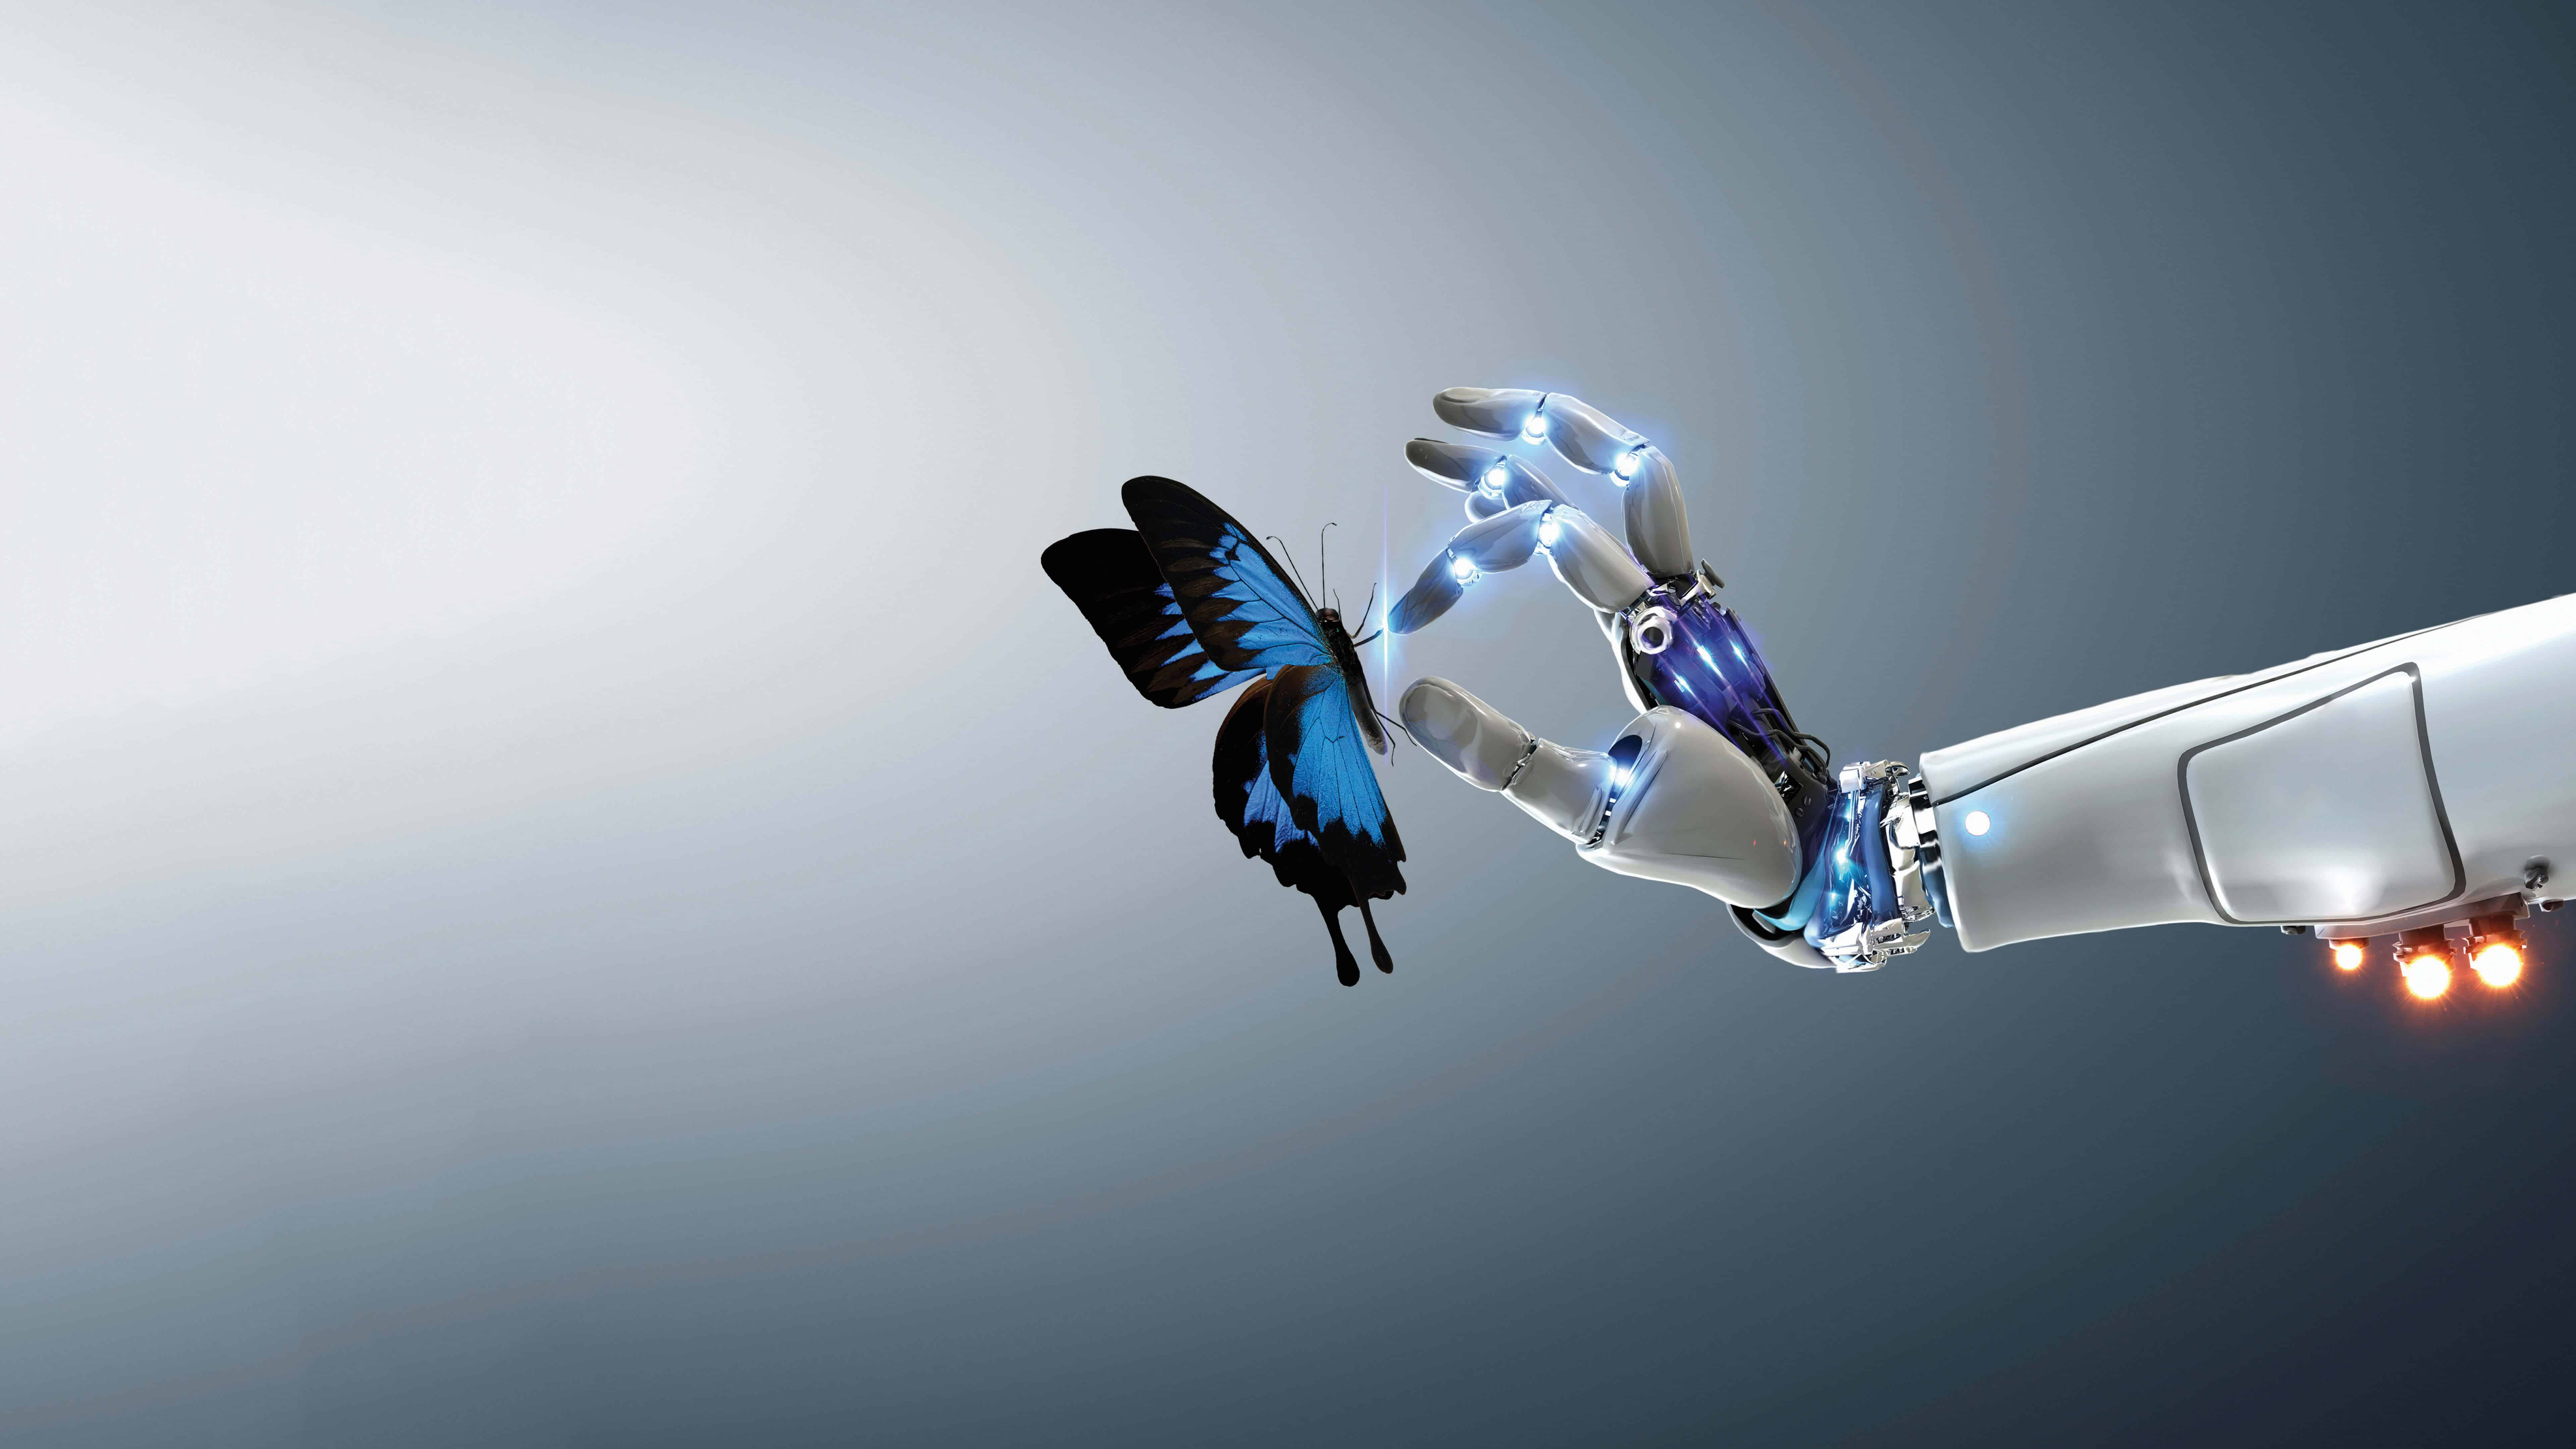 Engineering And Technology Ultra Hd Wallpapers: Technology And Nature Robot With A Butterfly UHD 8K